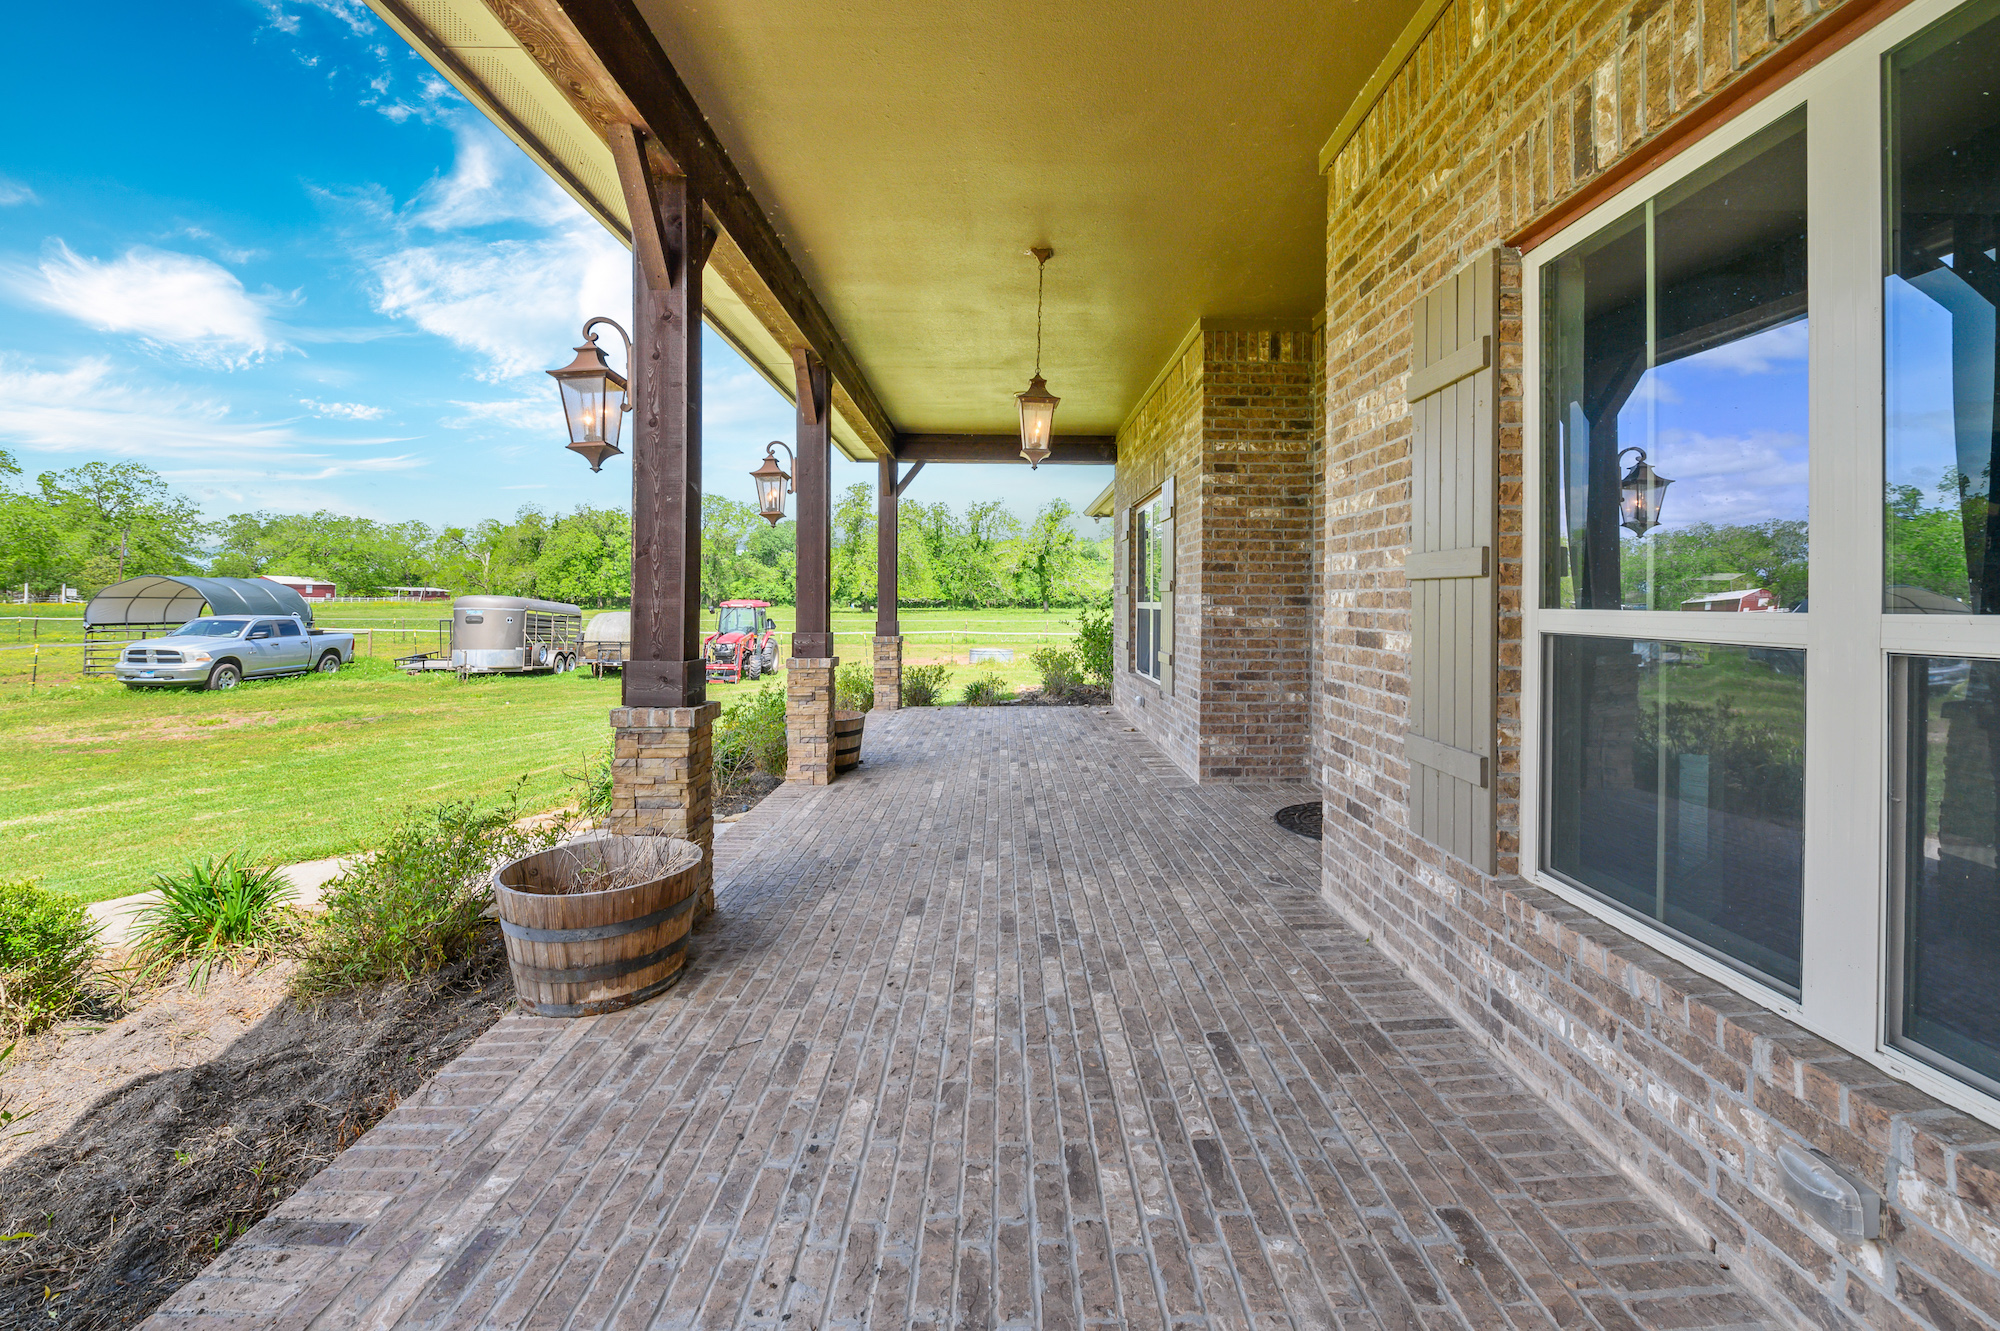 Custom Country Home with Acreage in Sealy - Image 38 of 46